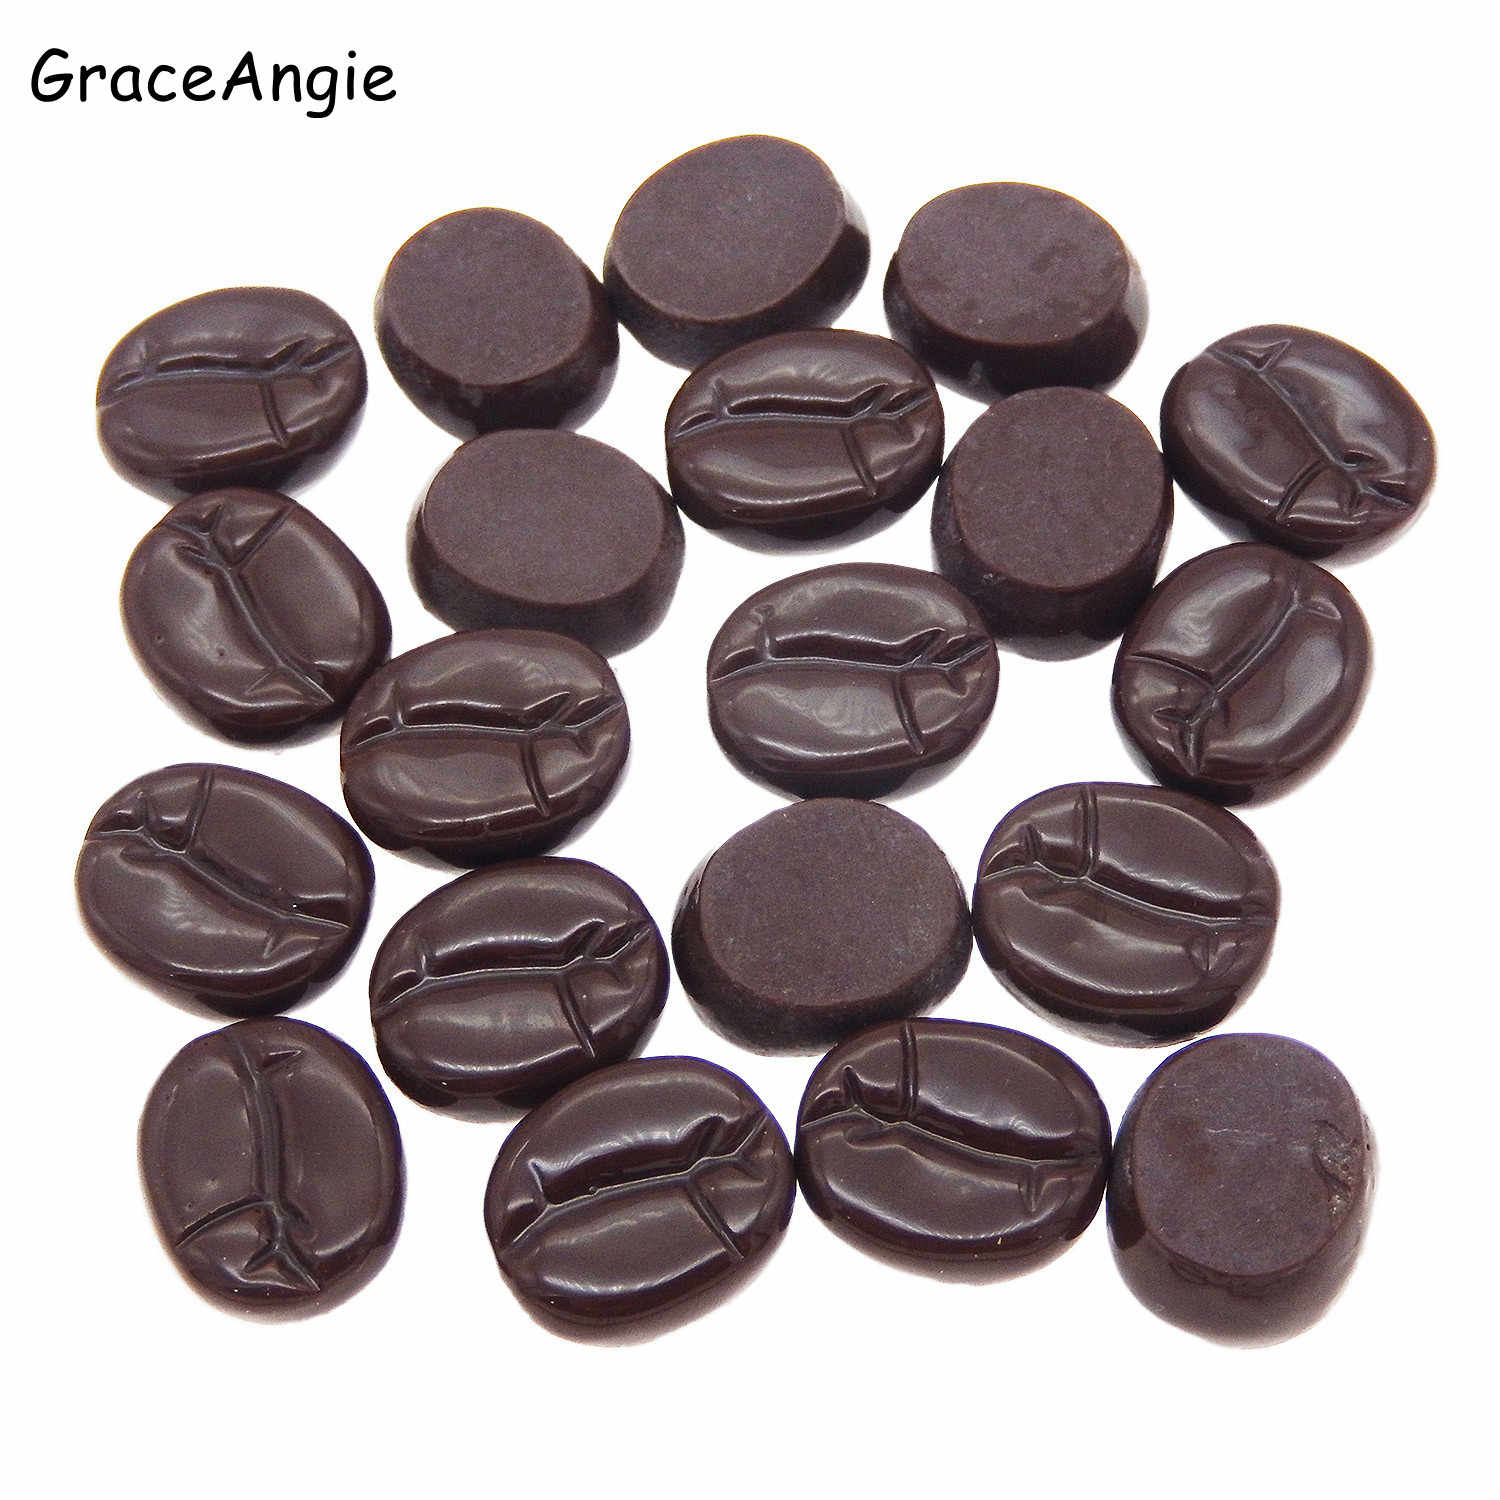 10pcs Resin Imitation Food Coffee Beans Flatback Jewelry Cabochons Slime Charms Beverages Jewelry Makings Handmade DIY Gifts